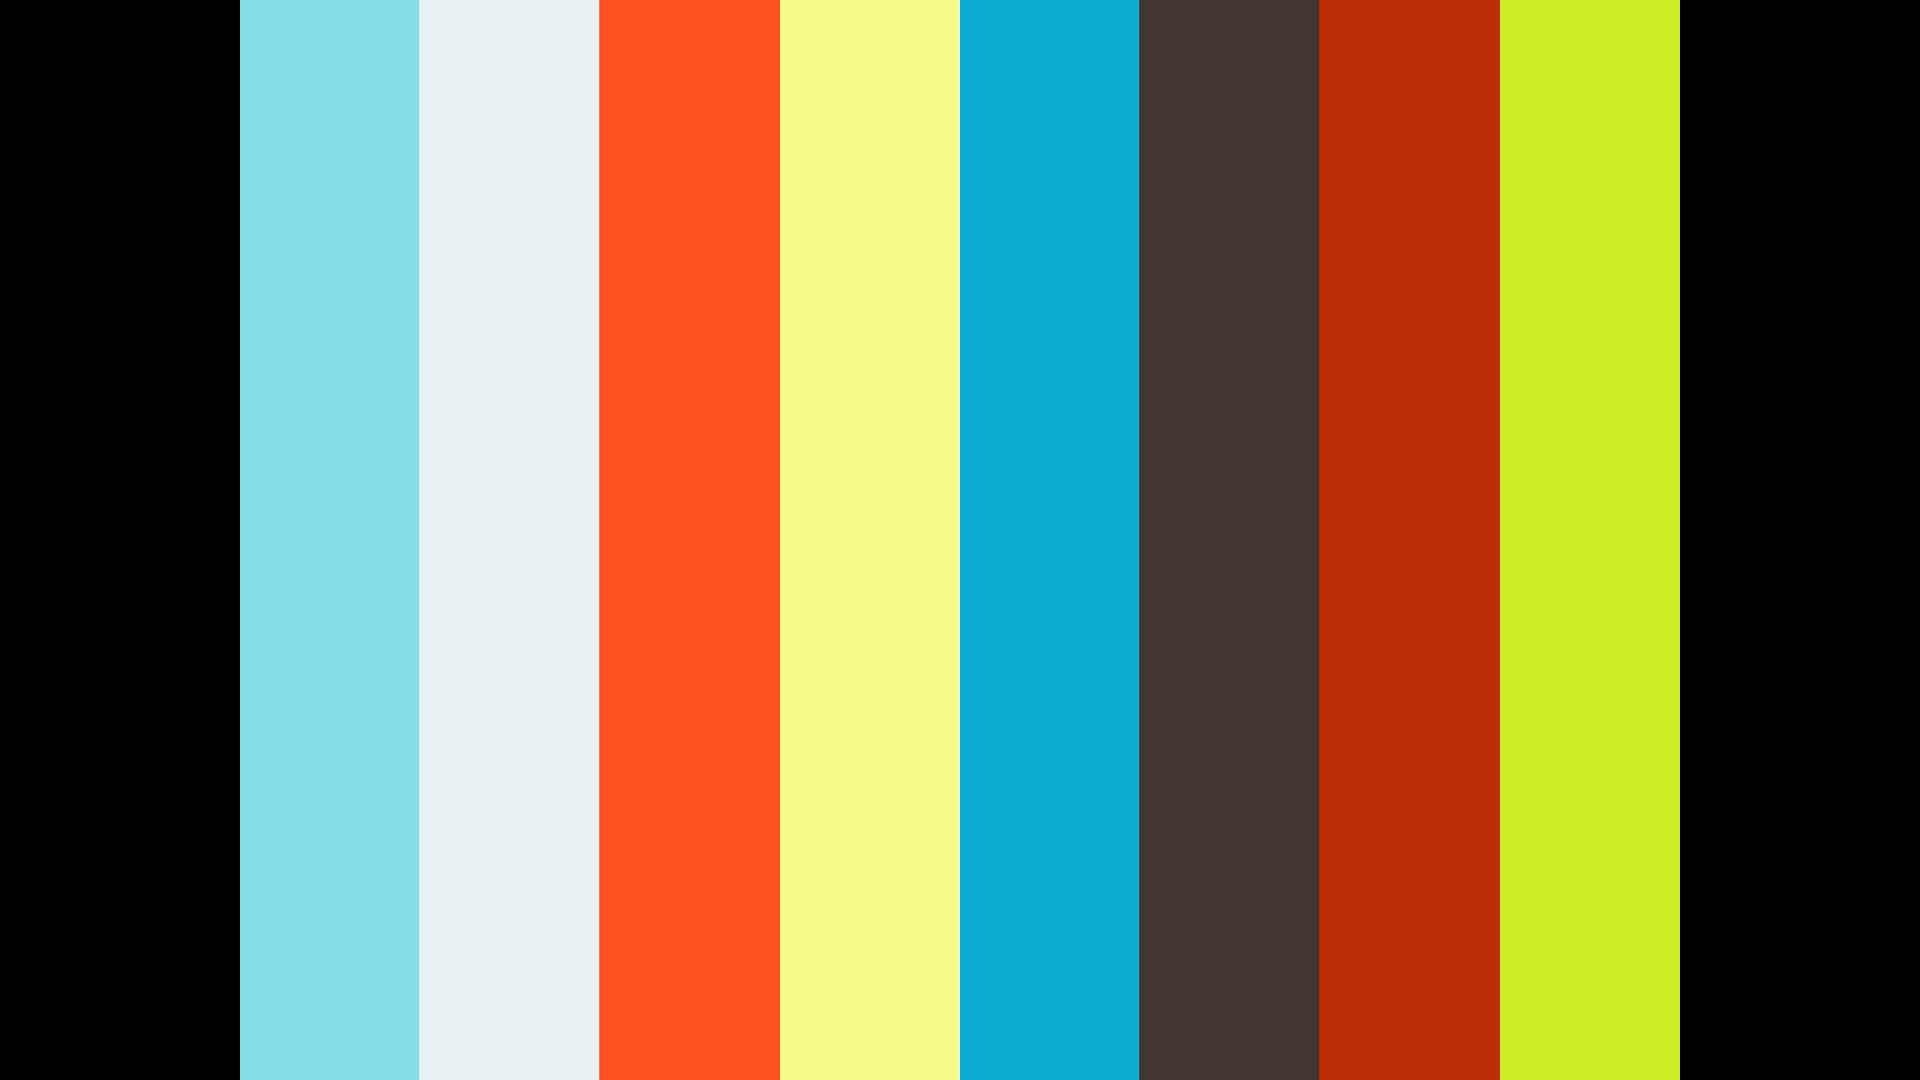 Cross-Cultural Connections: Sharing Manchester's Migration Stories